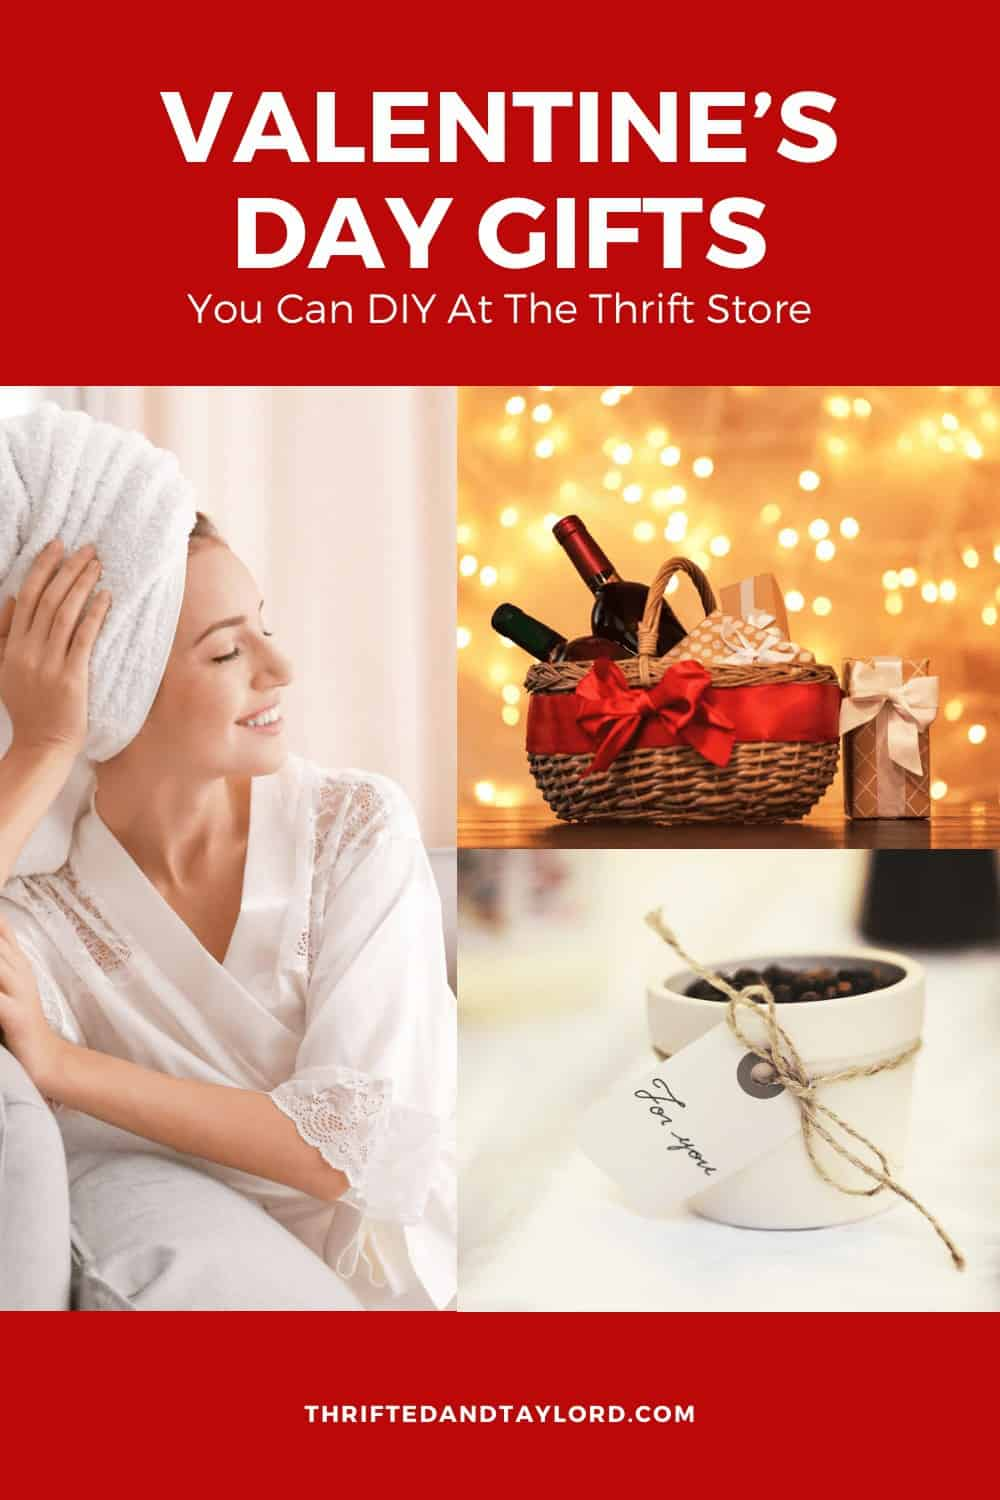 """3 images. 1st is a woman in a white silk robe with a white towel on her head who is smiling and looking off to the right. The second is a gift basket filled with wine bottles and gifts. There is a red ribbon around the basket and there are twinkle lights in the background. The third photo is a small white pot filled with coffee beans with a little paper tag on some twine wrapped around it that reads """"for you."""""""